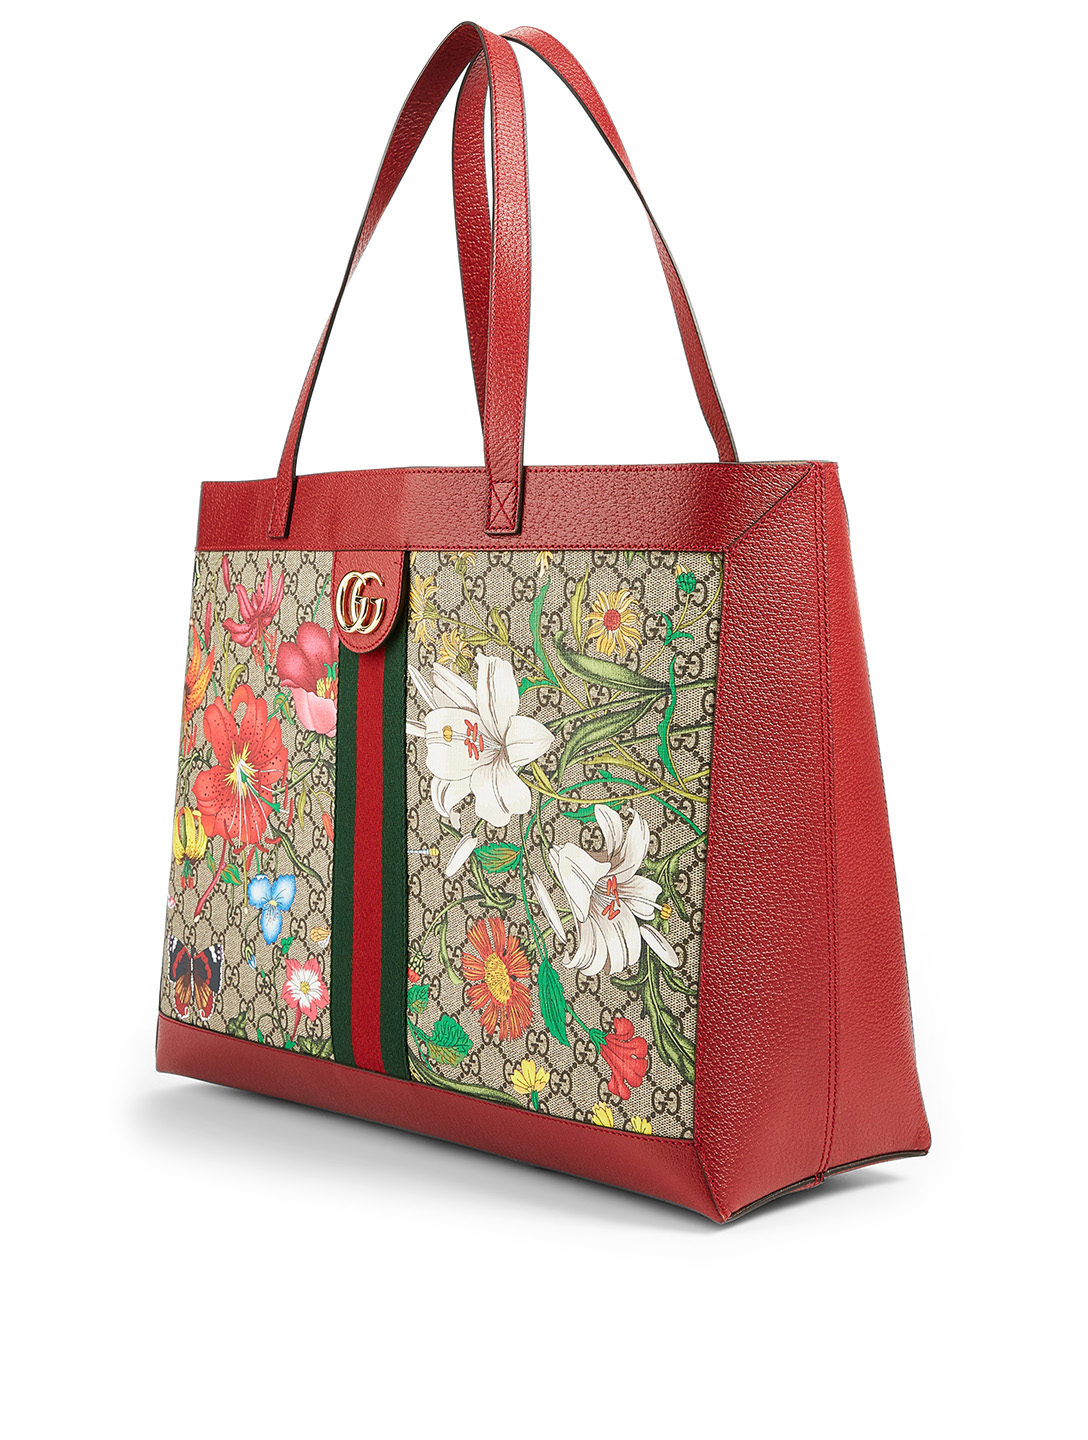 GUCCI Ophidia GG Supreme Tote Bag Women's Red